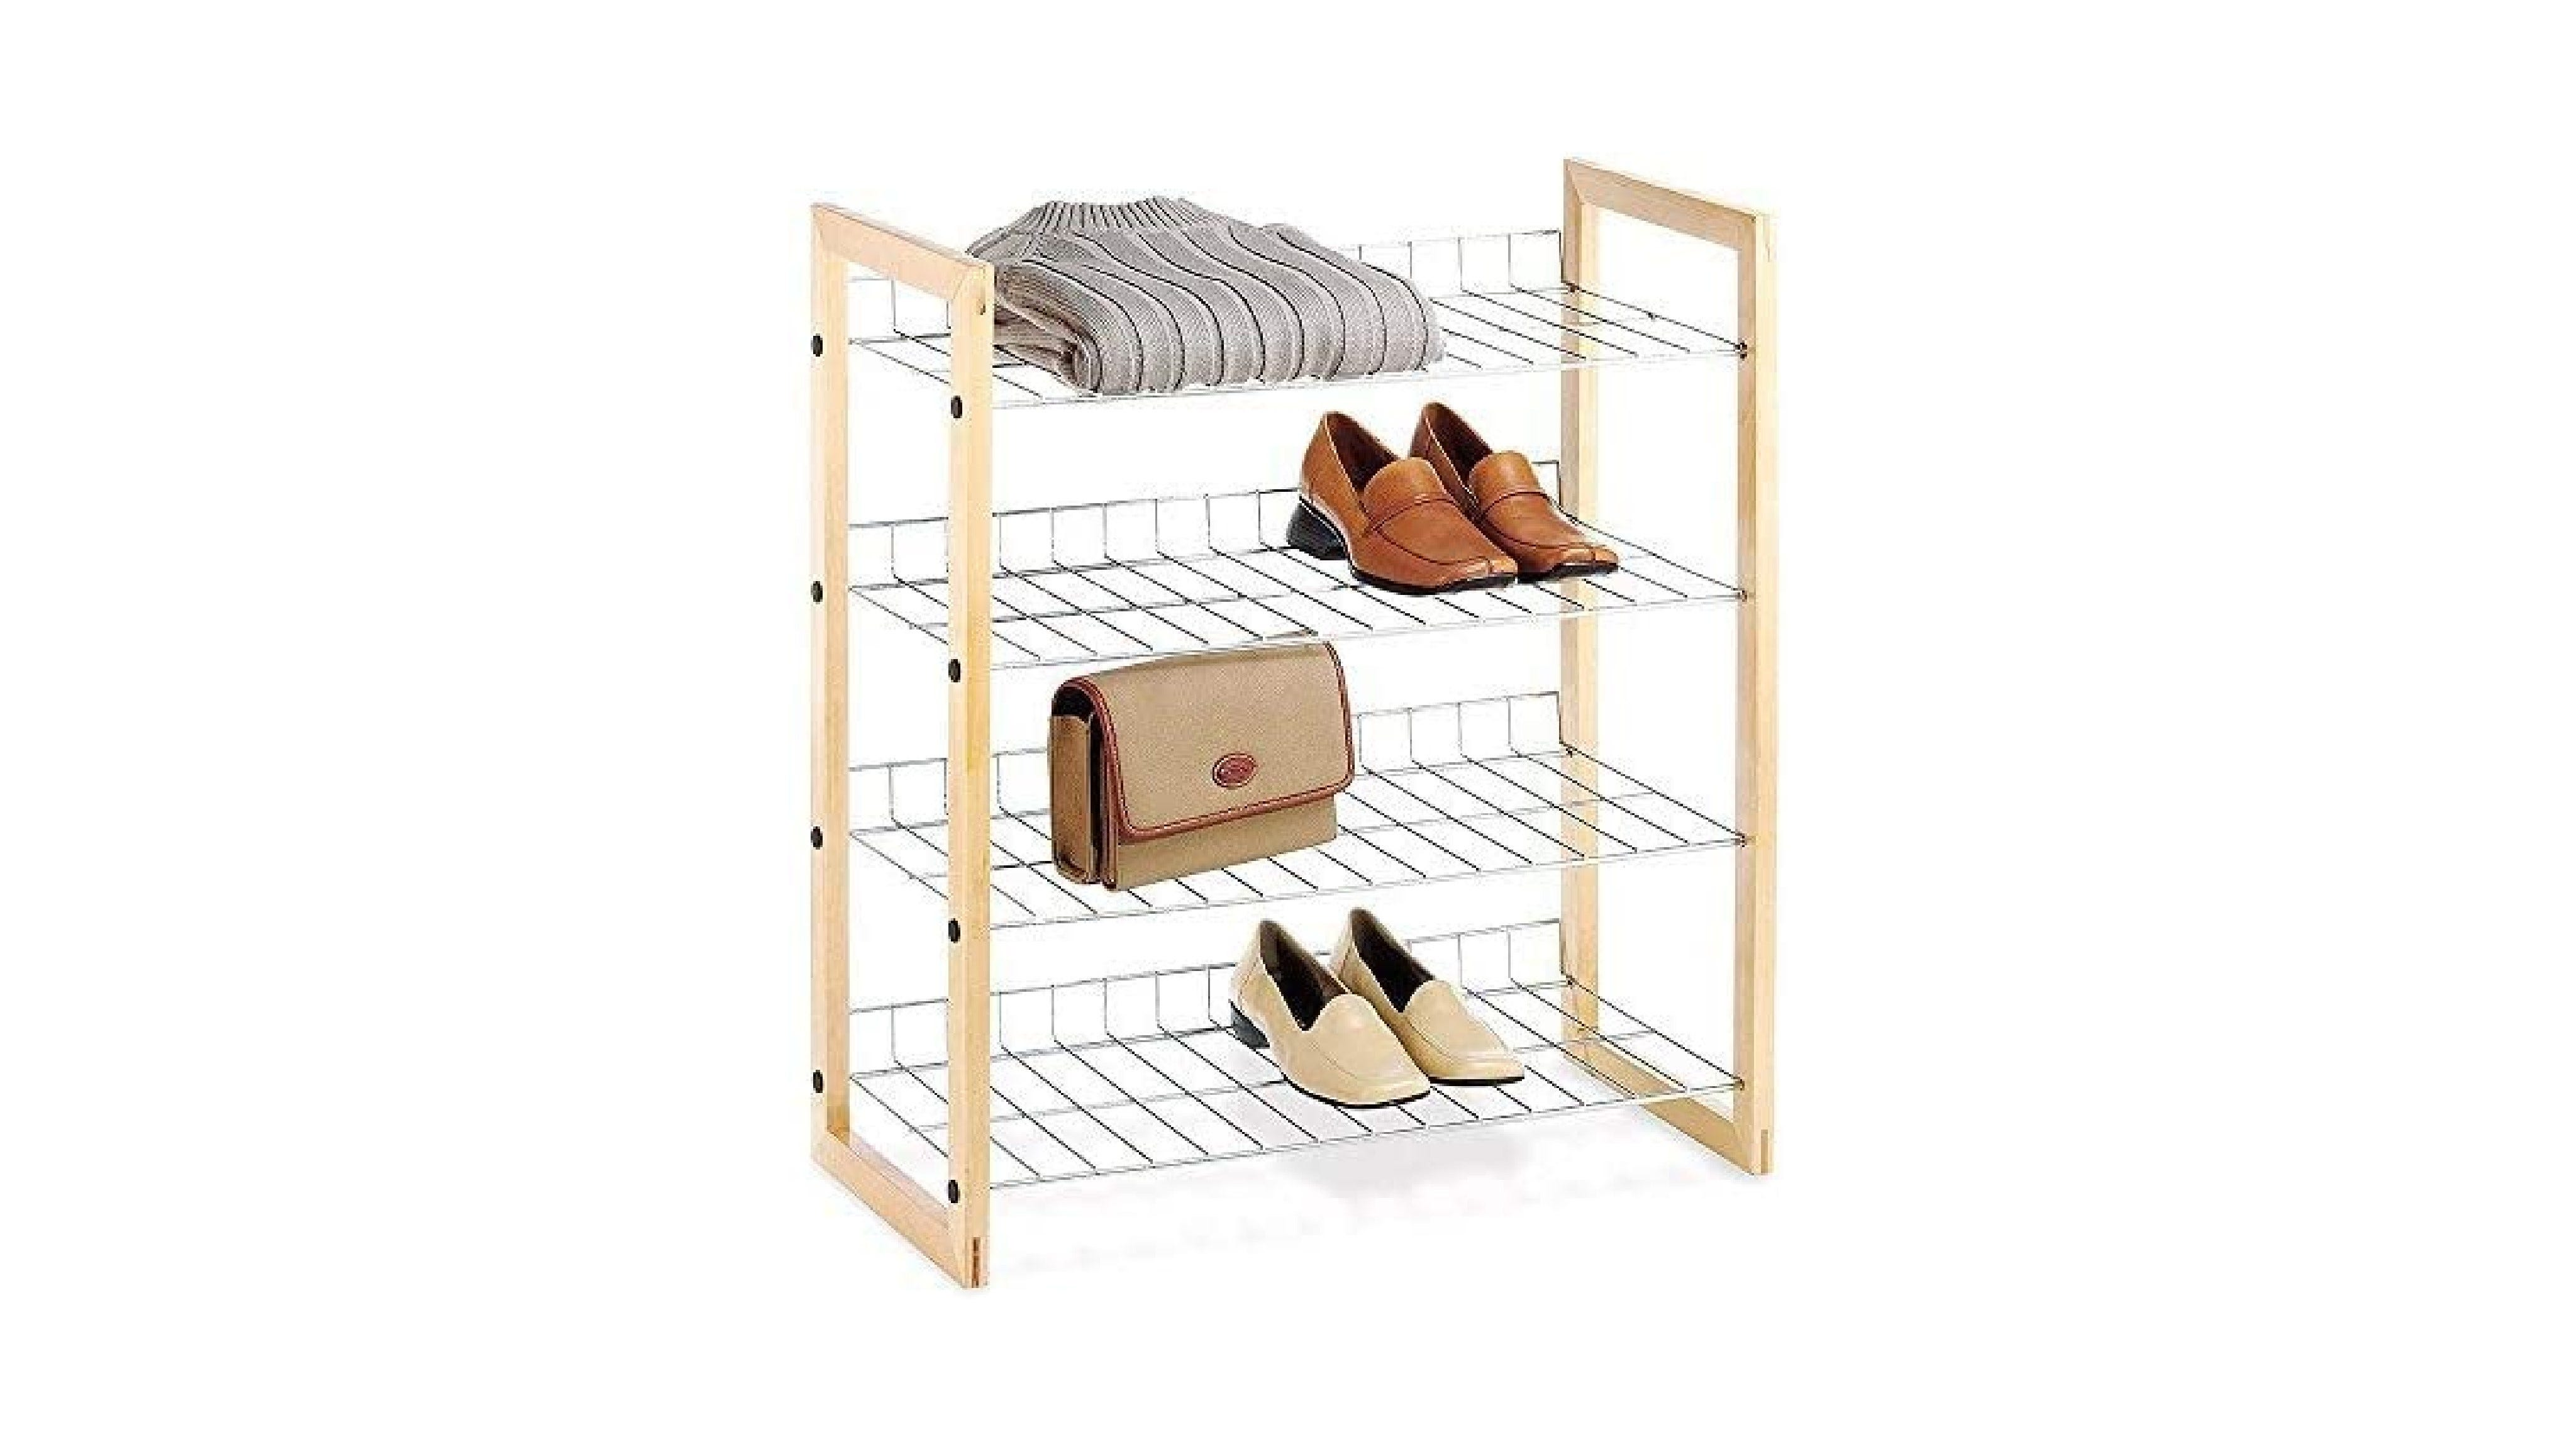 Shoe rack with shoes and other items on it.